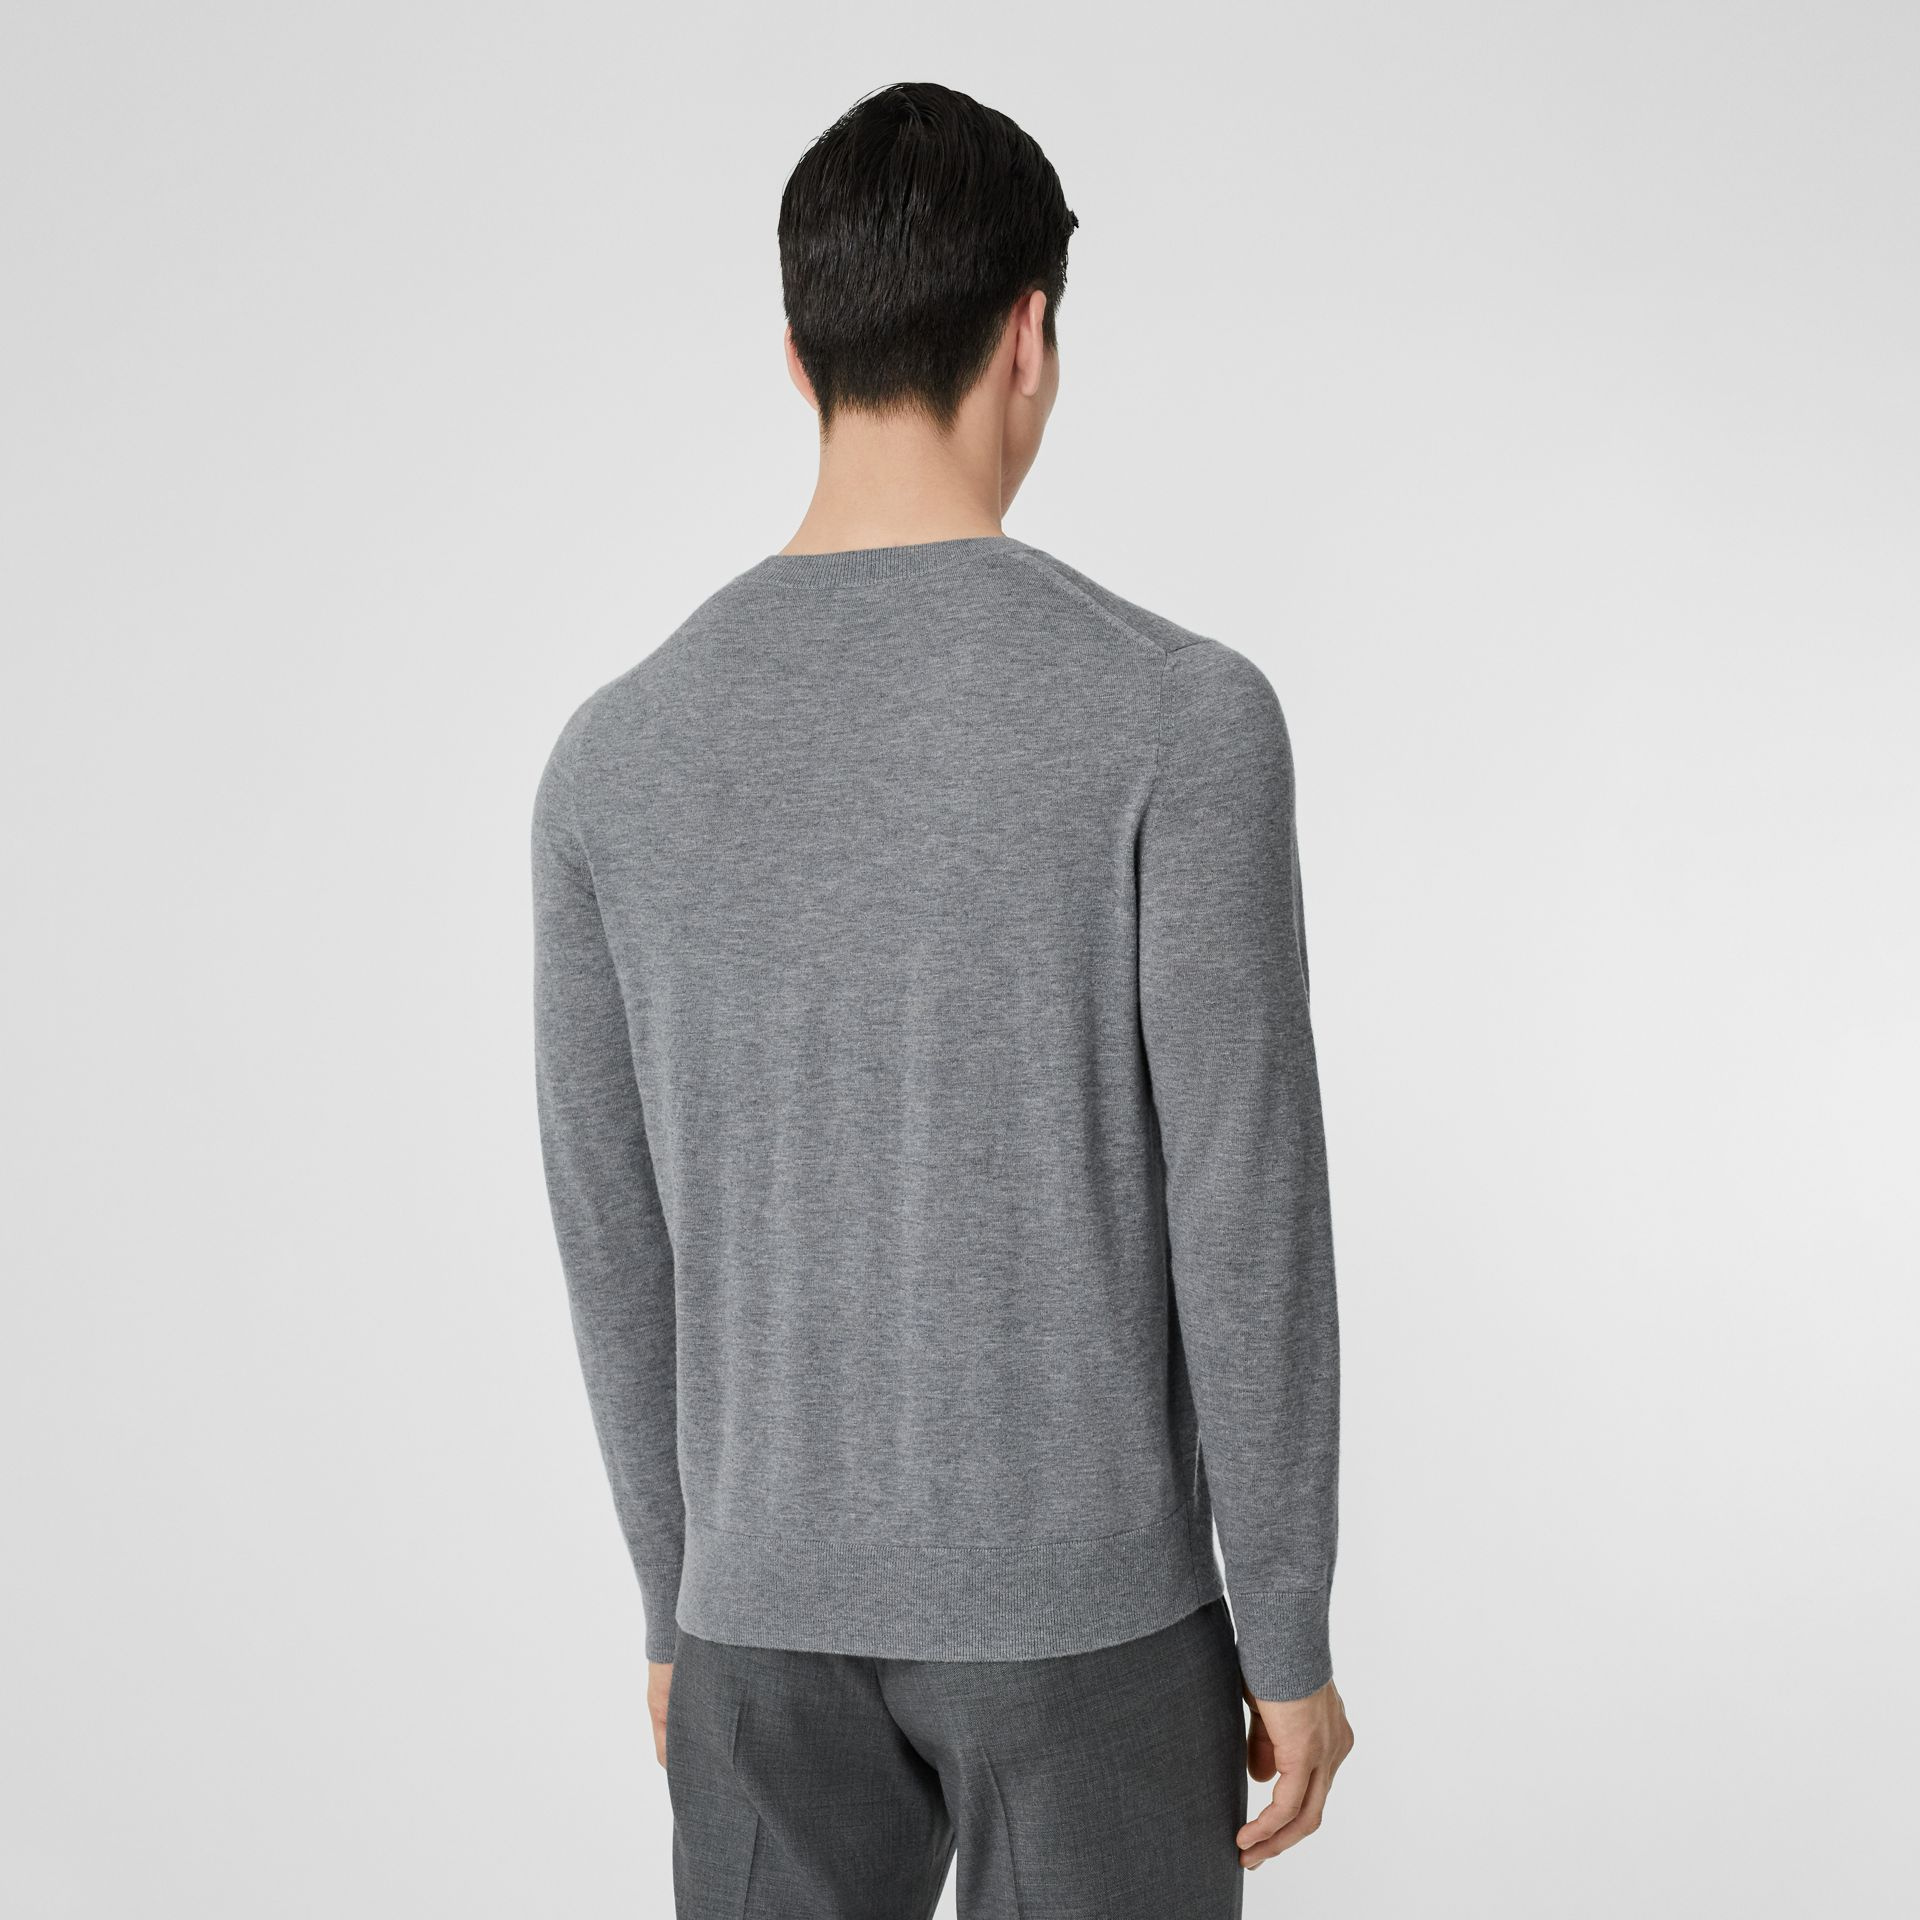 Monogram Motif Cashmere Sweater in Pale Grey Melange - Men | Burberry - gallery image 2